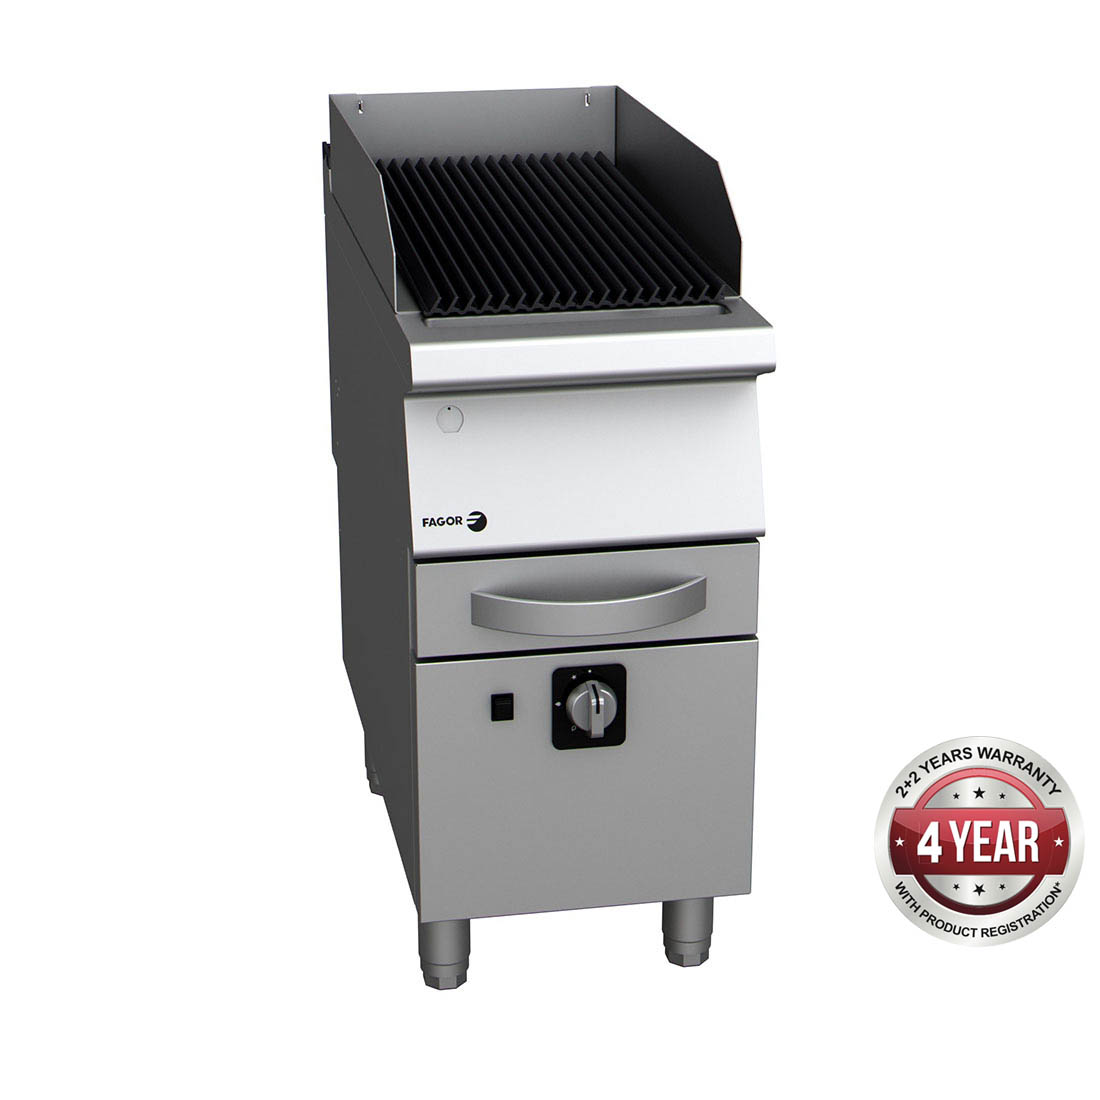 900 Series NG Chargrill - B-G9051